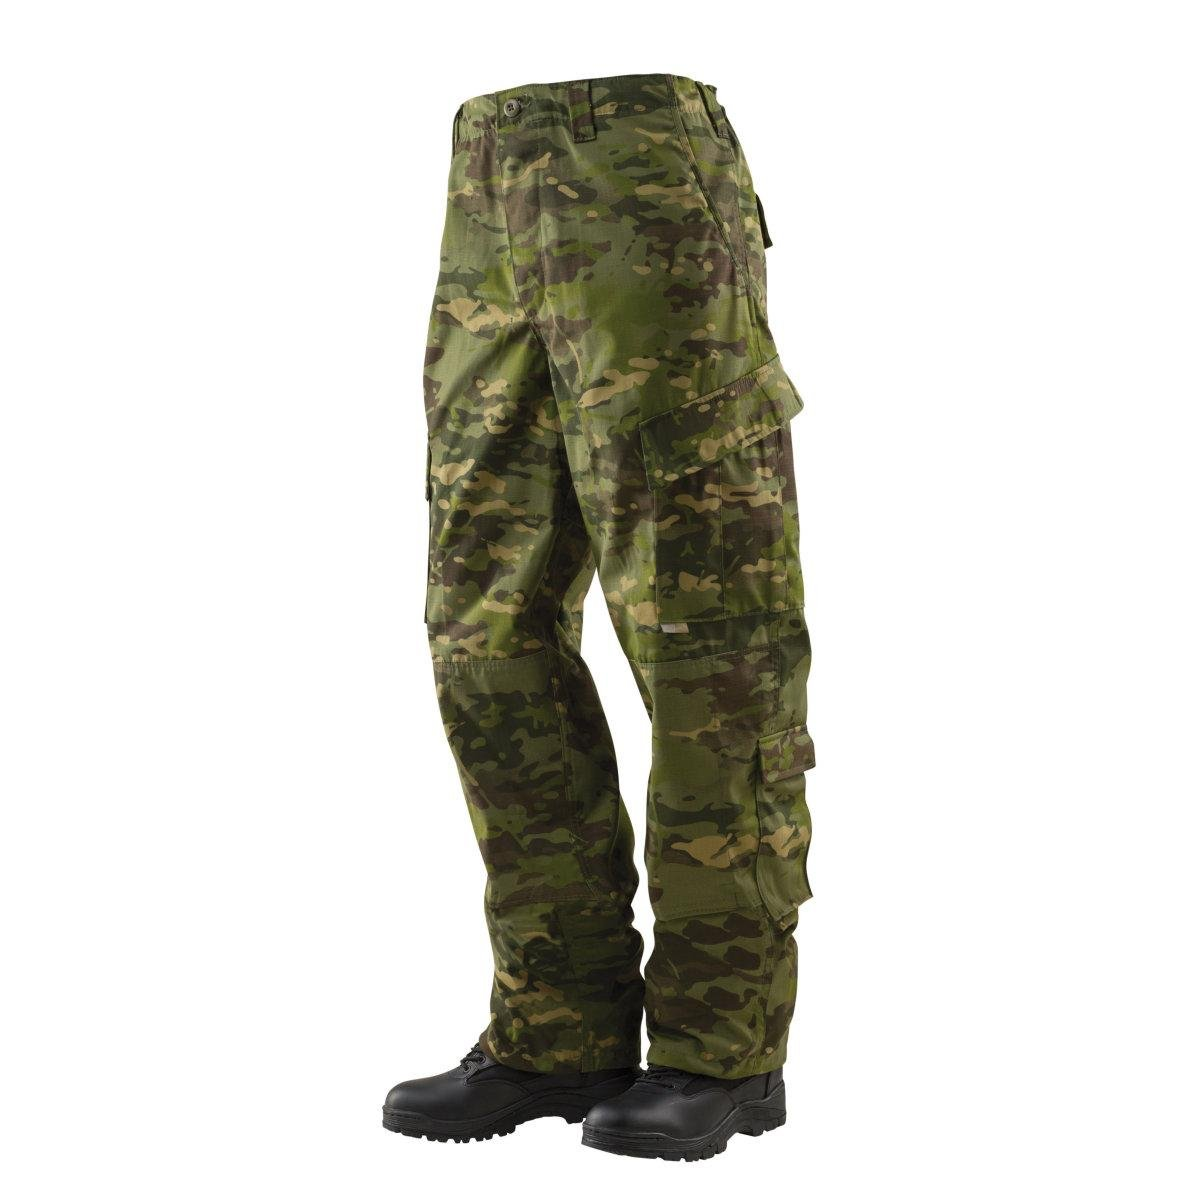 TRU-SPEC Tactical Response Pant Atlanco 7100-P